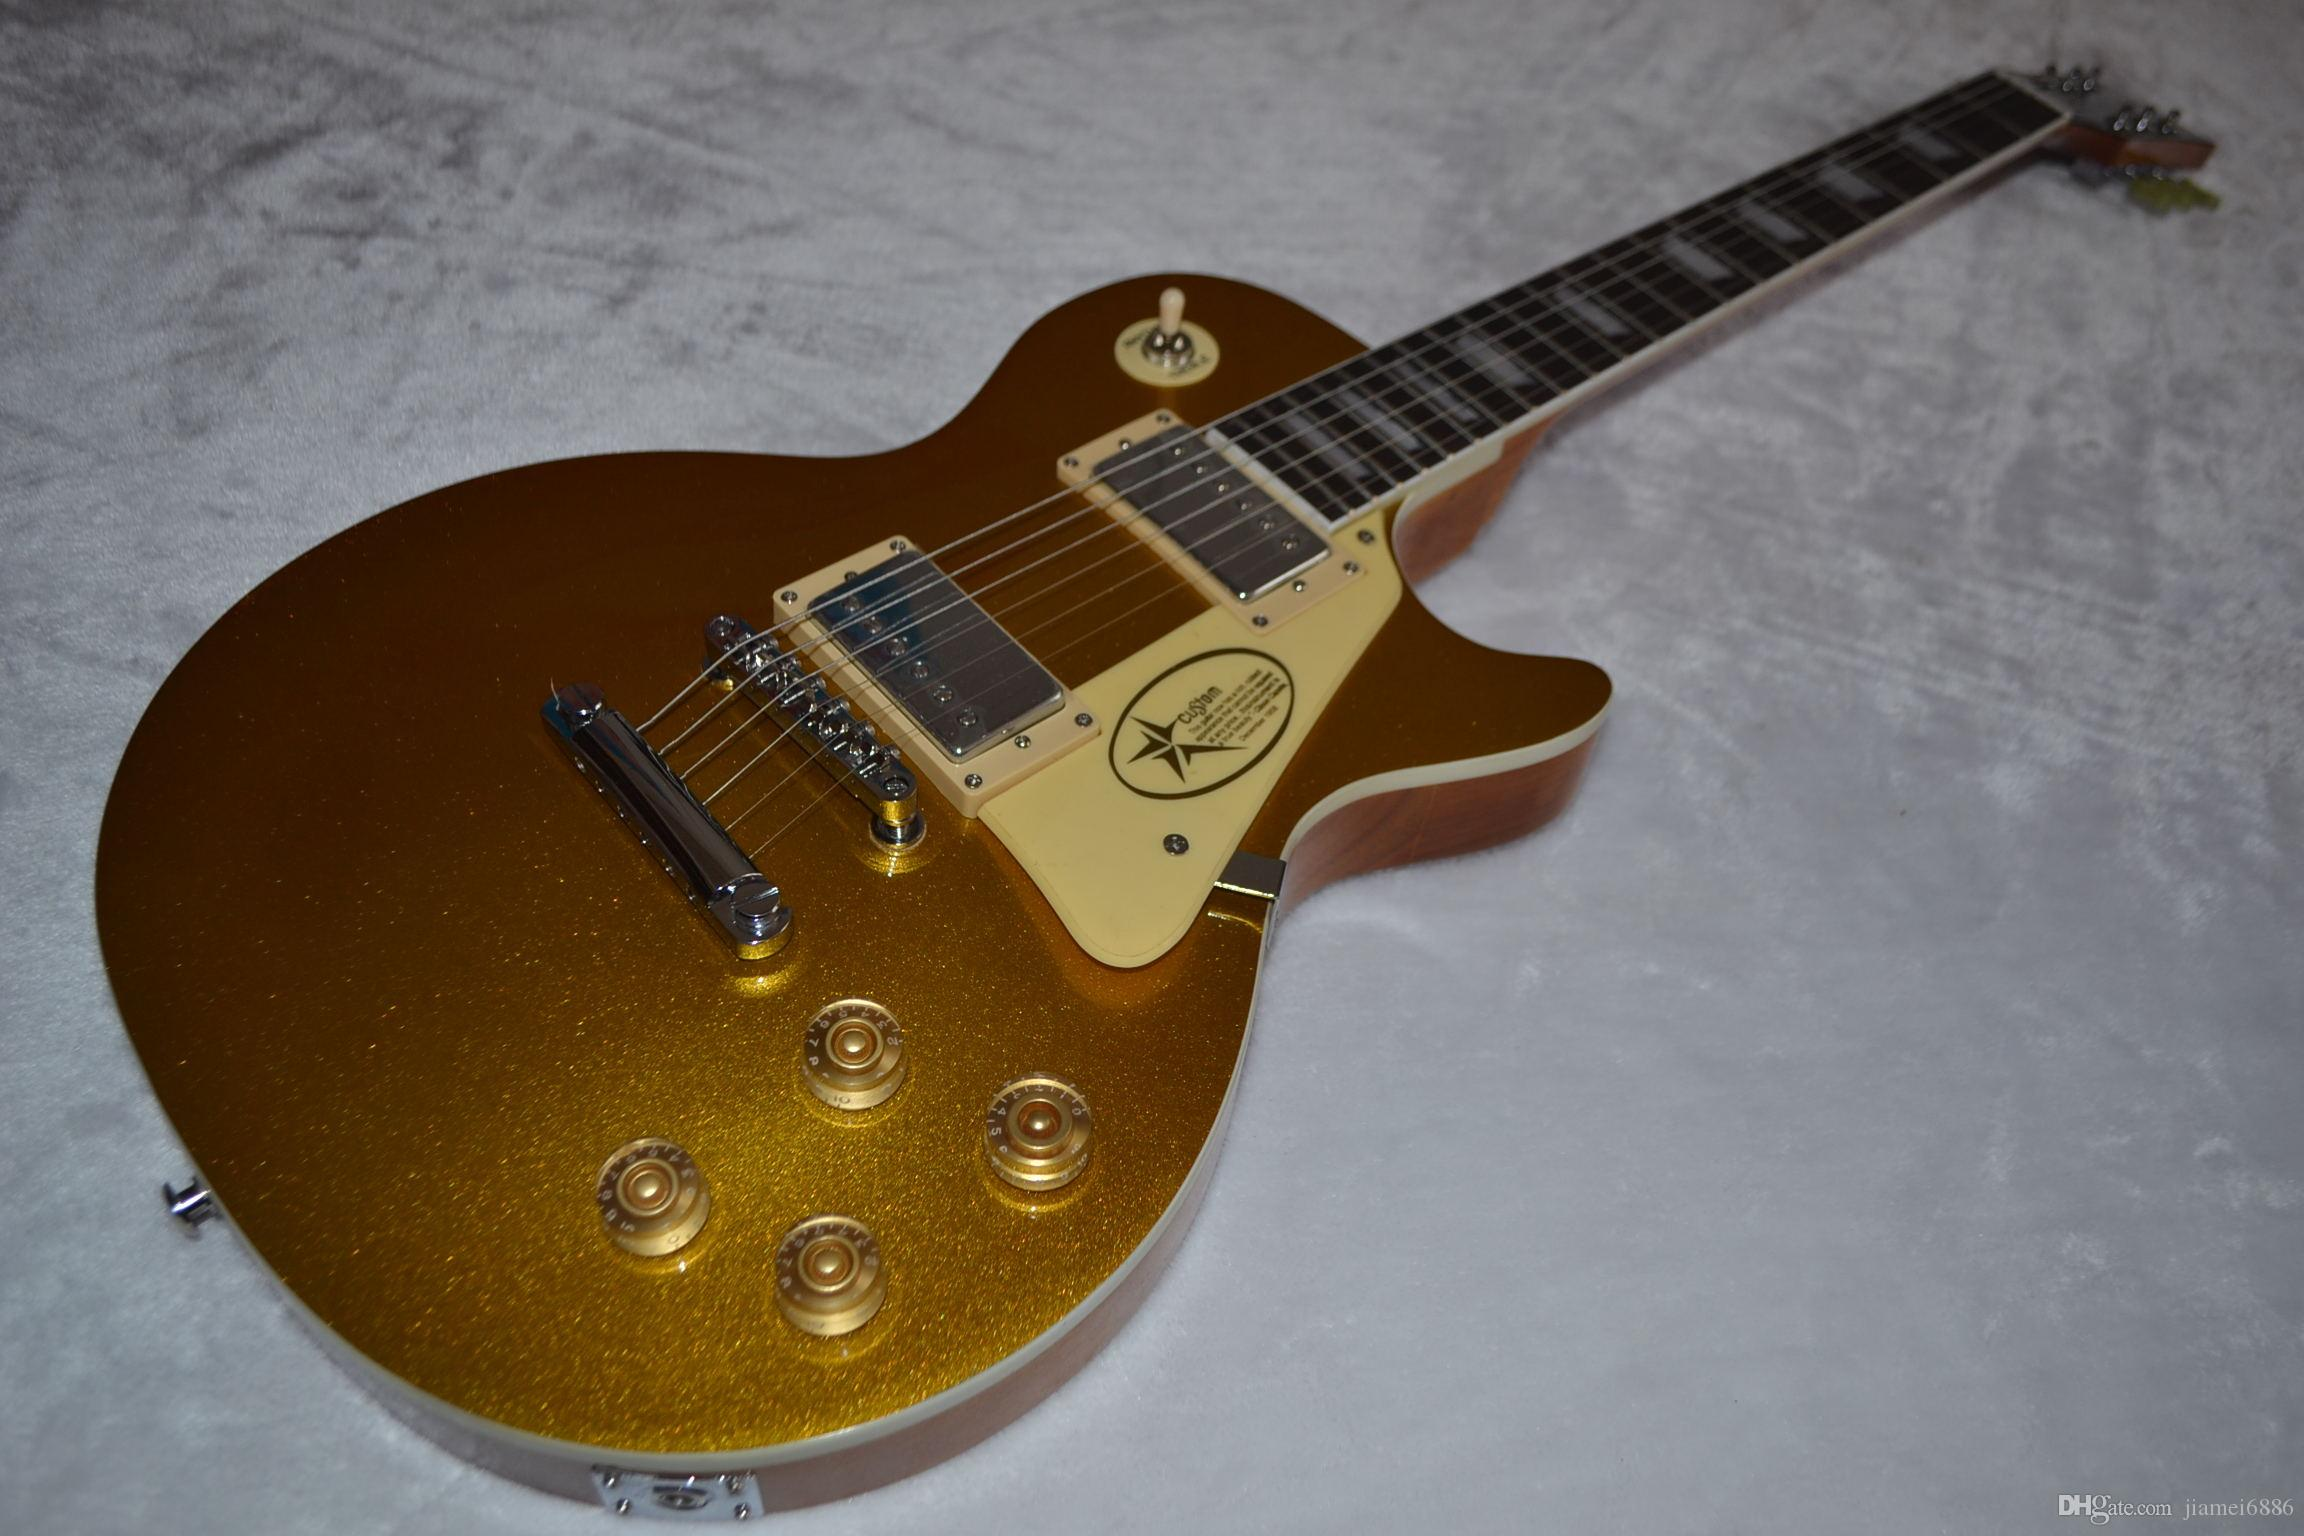 Golden dust top free shipping five-star logo electric guitar one body and one-piece neck sound quality binding China high quality